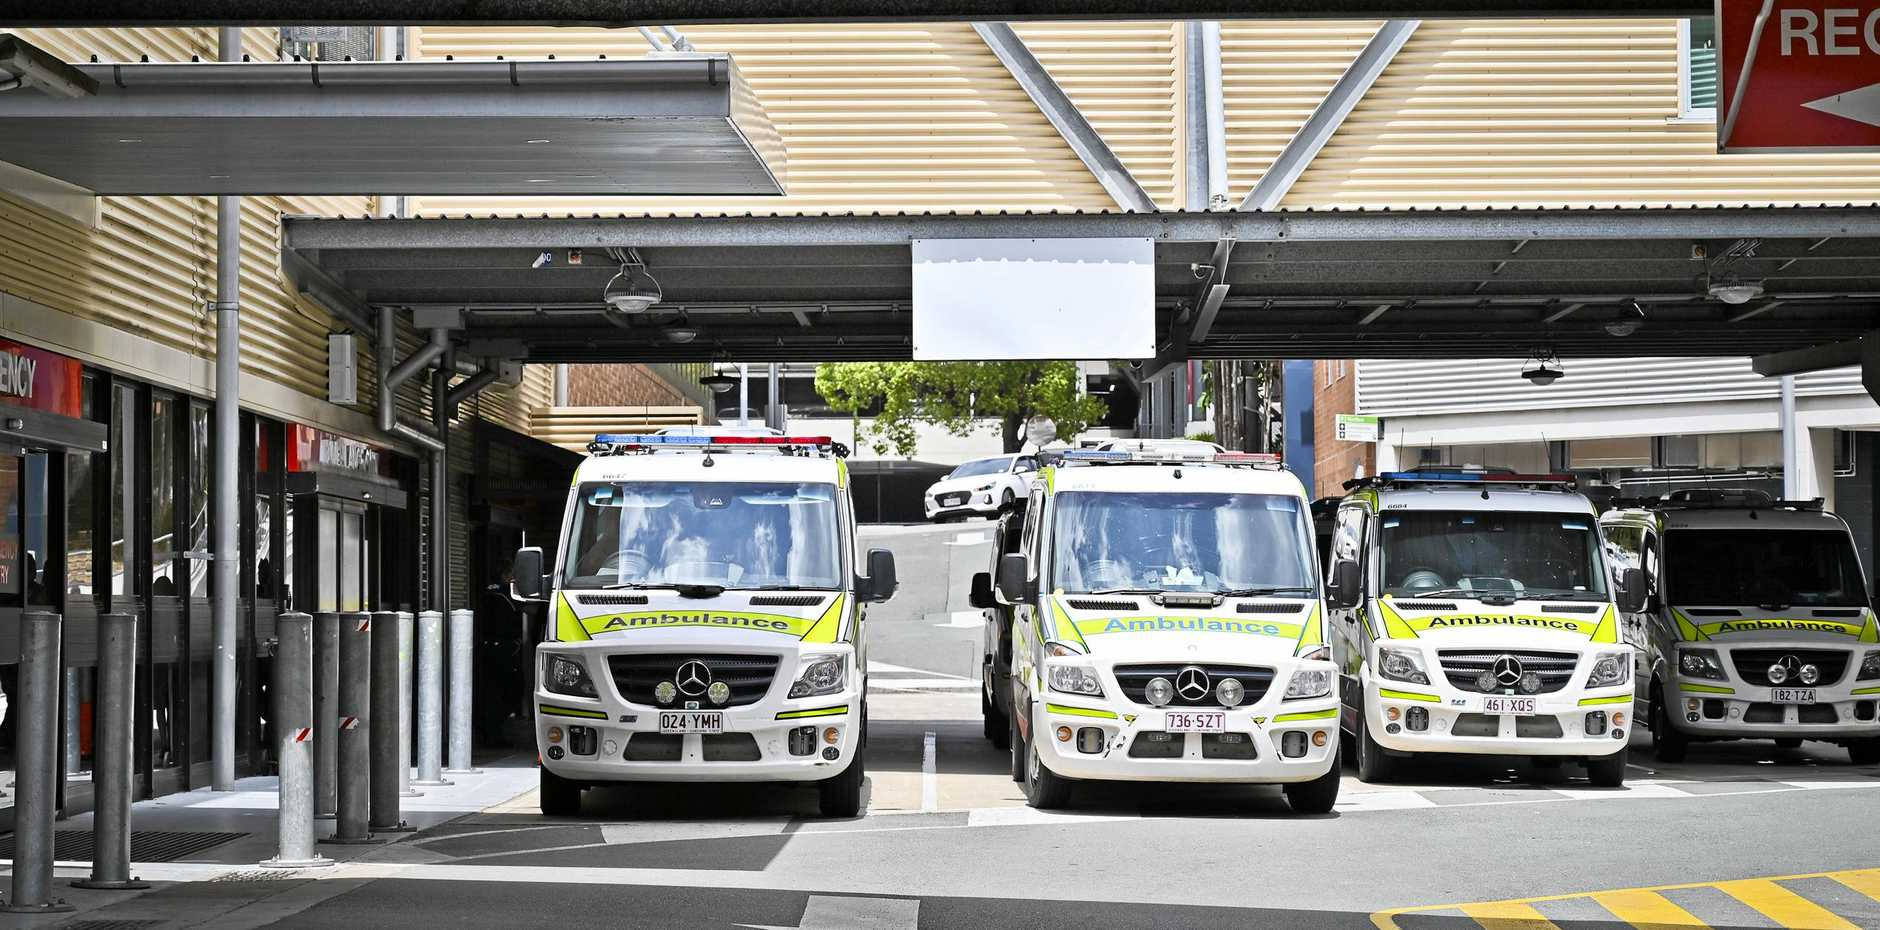 The NSW Health Services Union argued population growth was placing increased strain on the state's ambulance service.